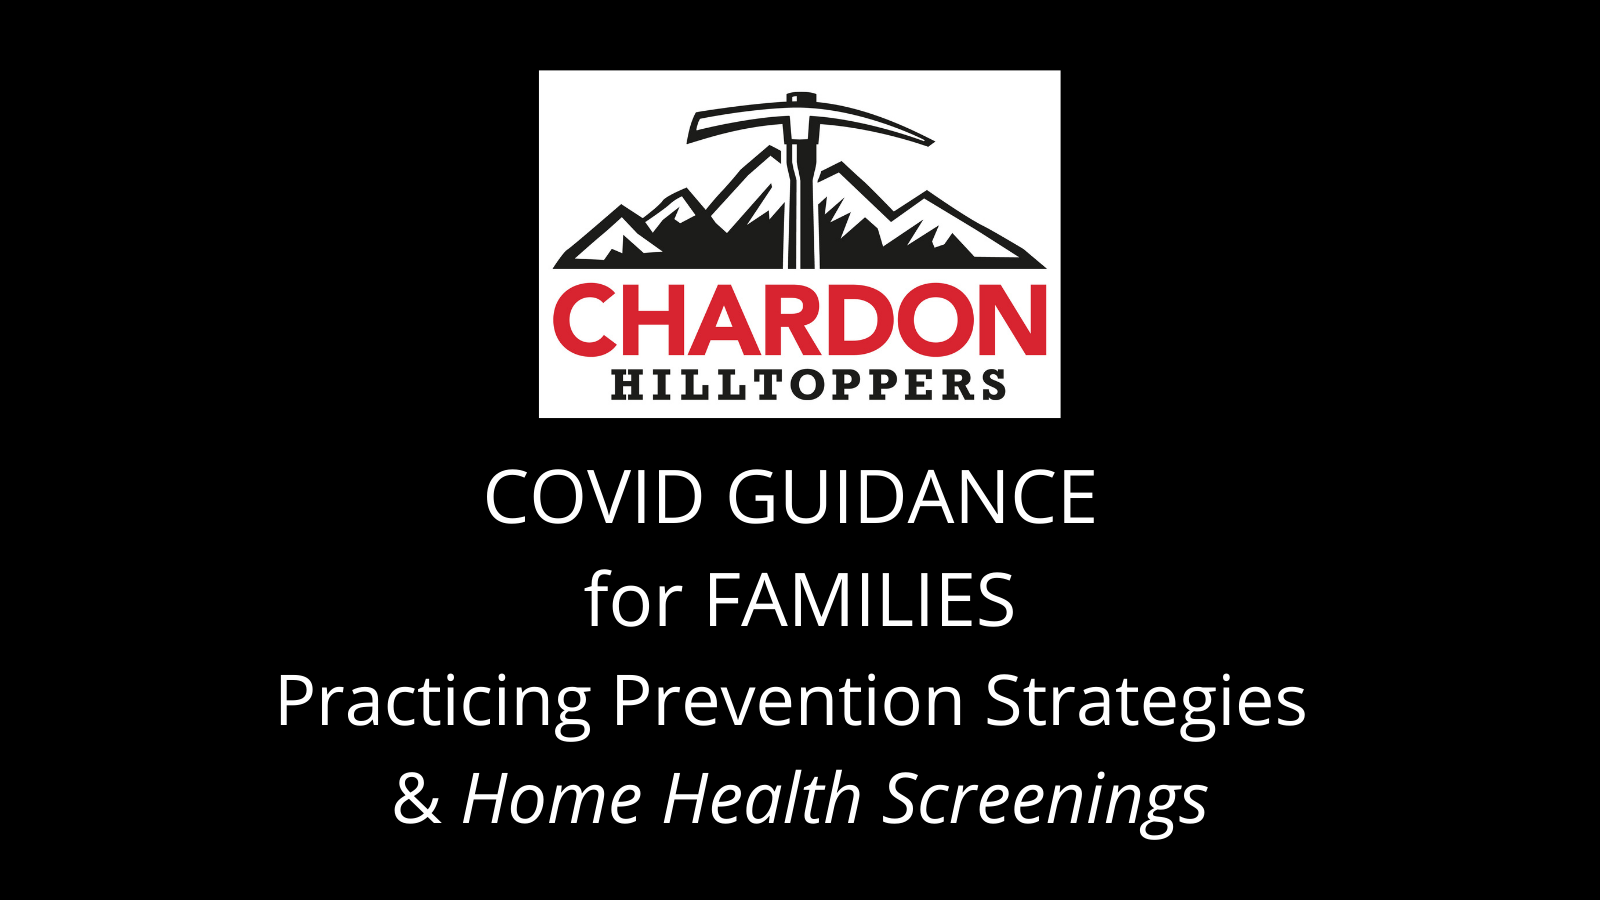 graphic featuring Chardon Hilltoppers mountain axe logo; verbiage:  Practicing Prevention Strategies & Home Health Screenings